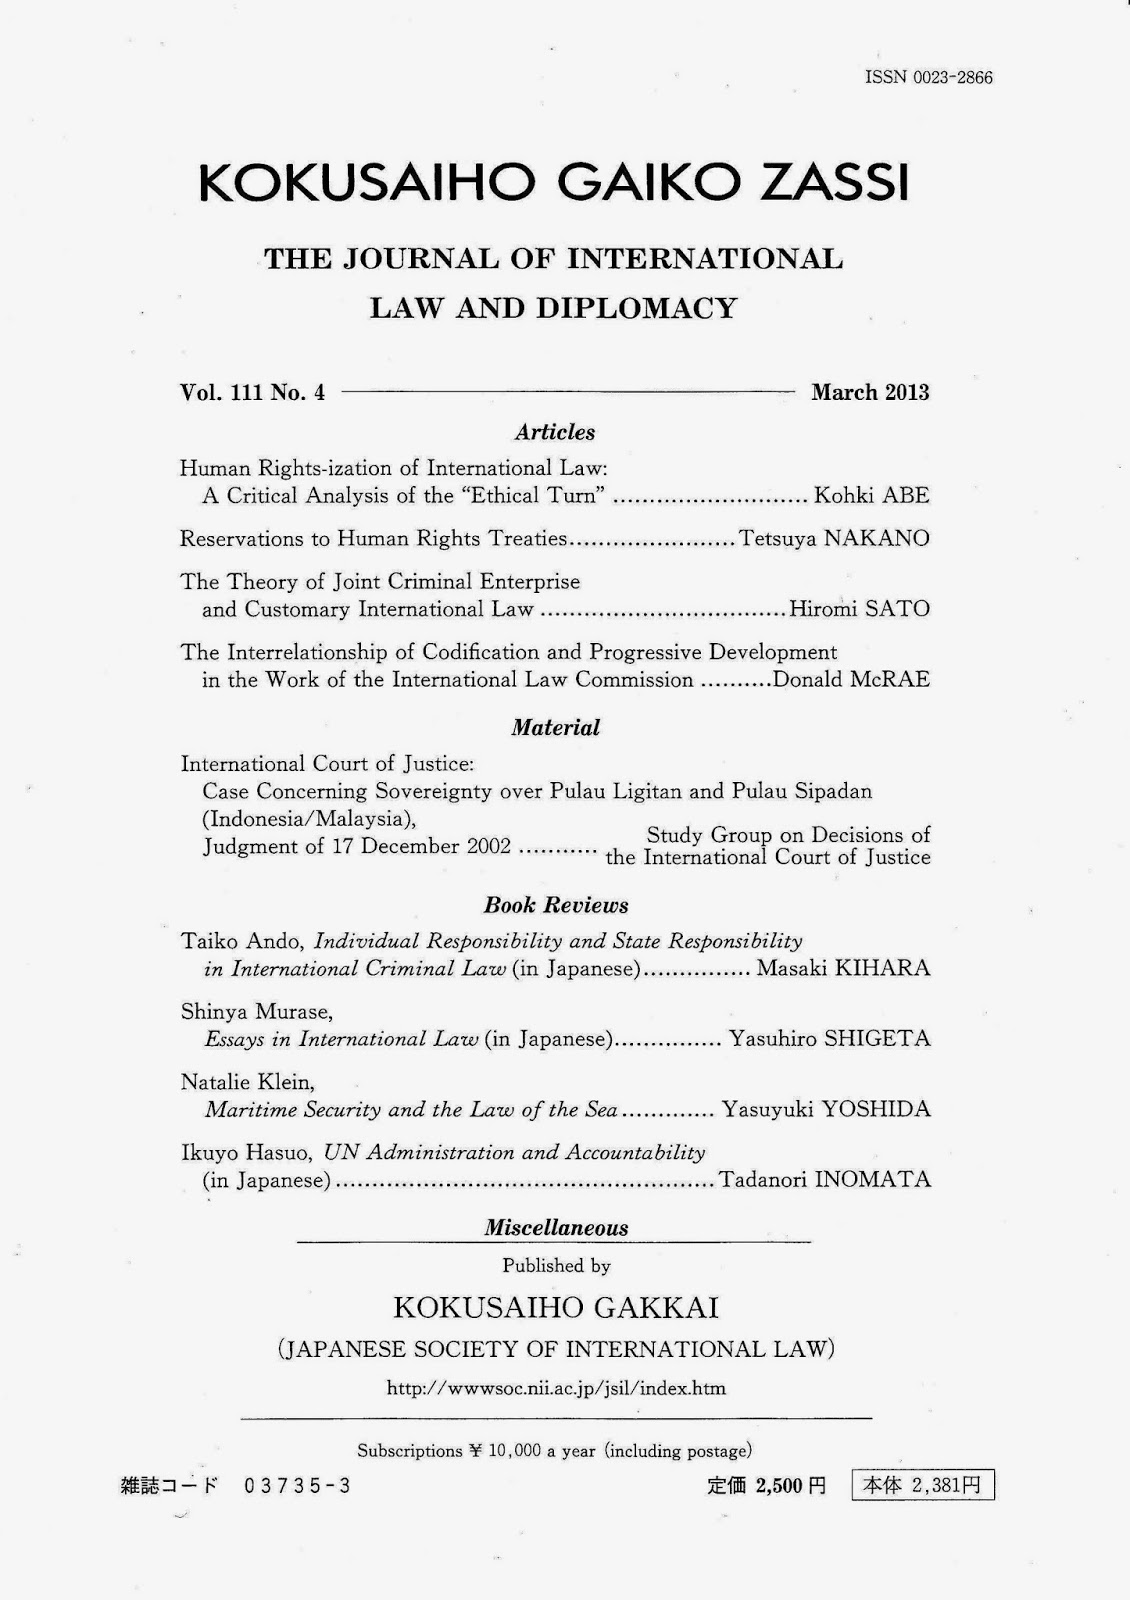 international law essays human rights essay award human rights  international law reporter new issue kokusaih333 gaik333 zasshi journal of international law and diplomacy